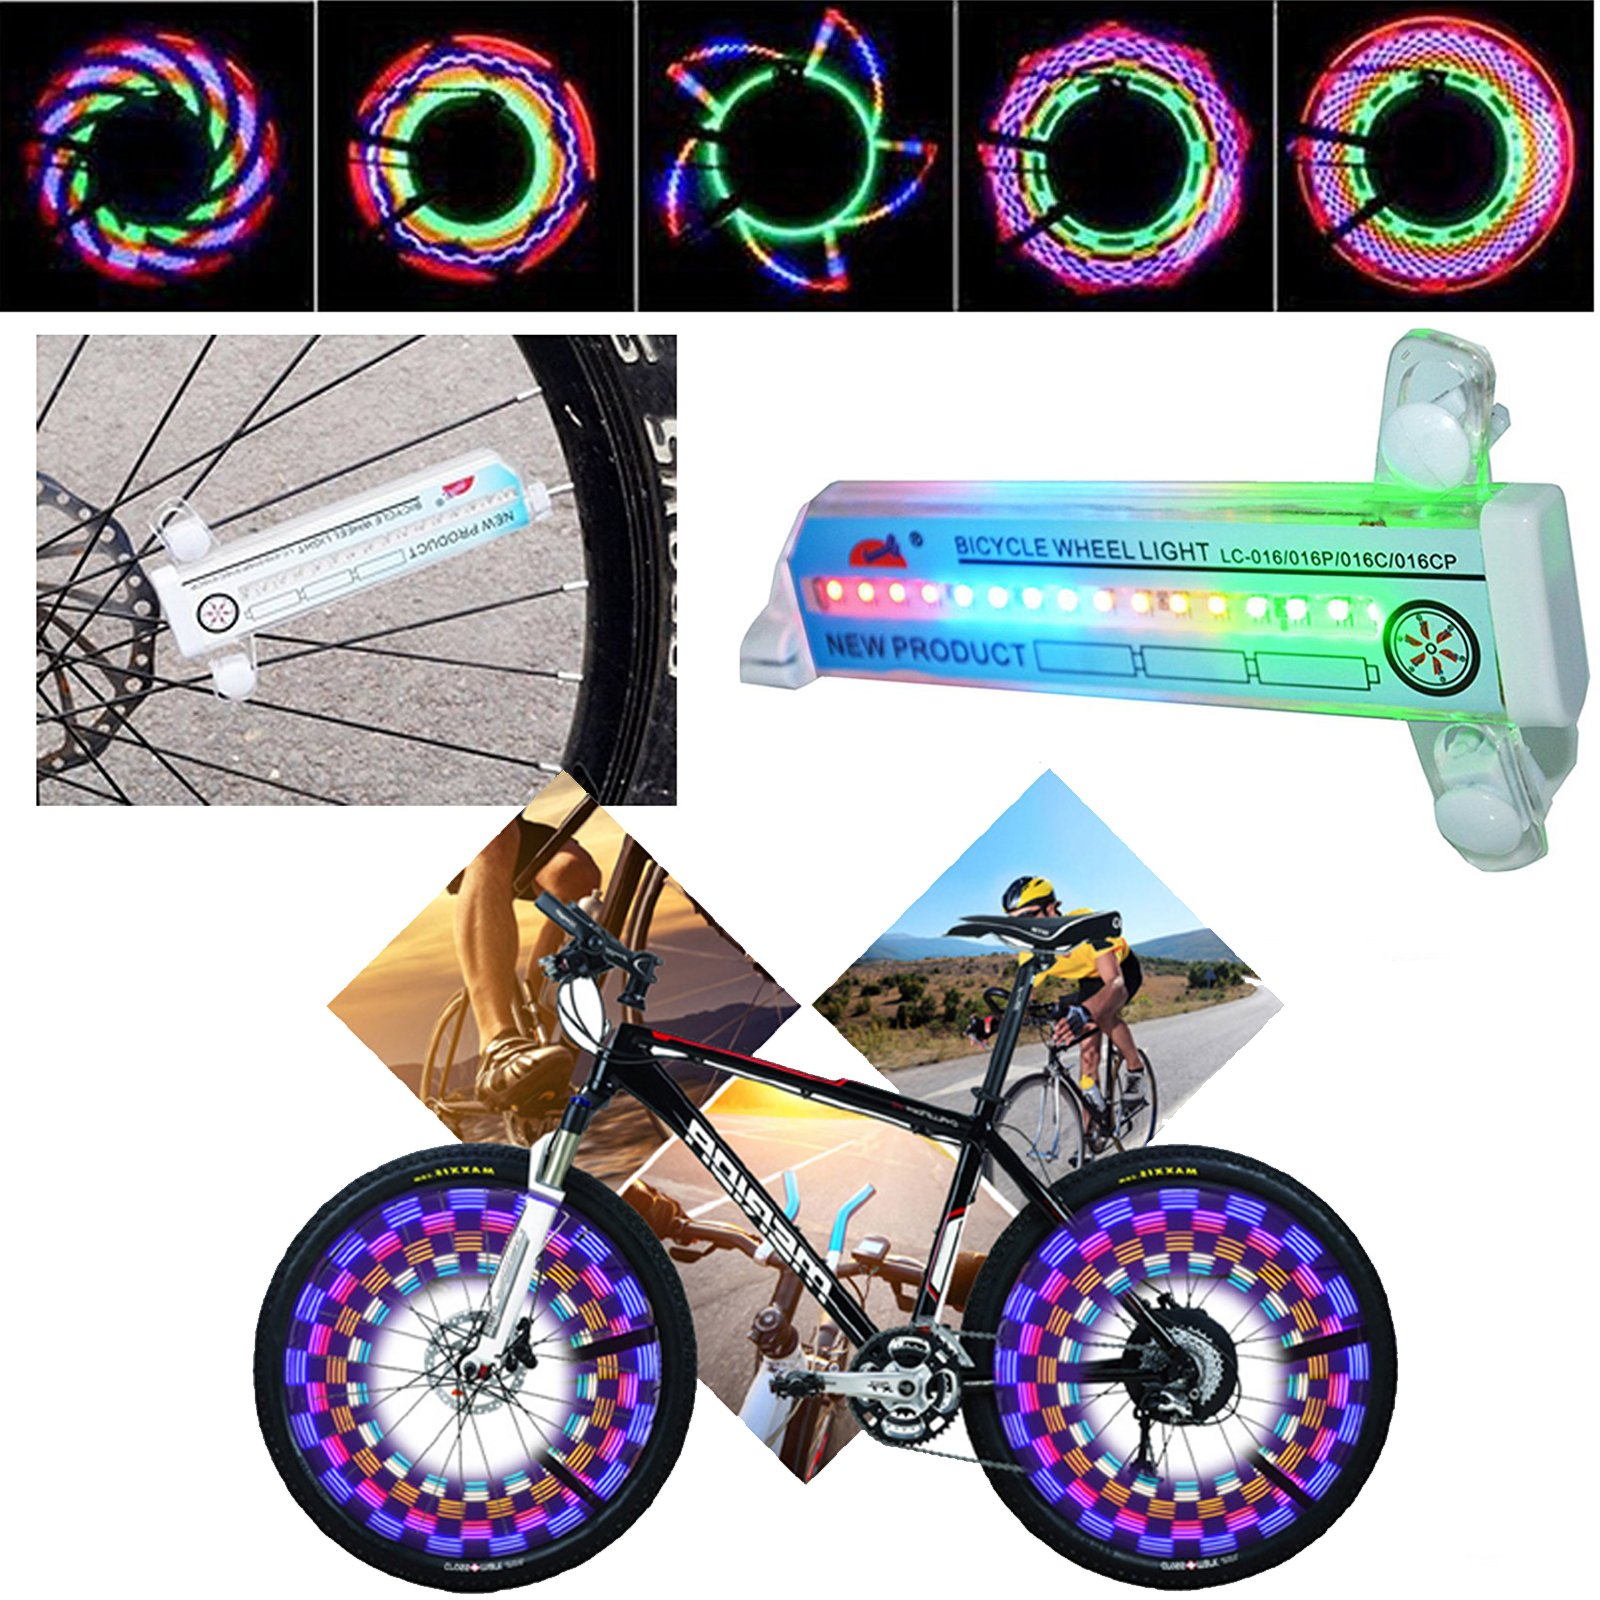 Bicycle Wheel Lights 32 LED Spinning Light Lamp Bike Accessories Valve Flashing Spoke Light Cycling Bikes Bicycles Outdoor (32 Pattern) by Fashionlive (Image #7)